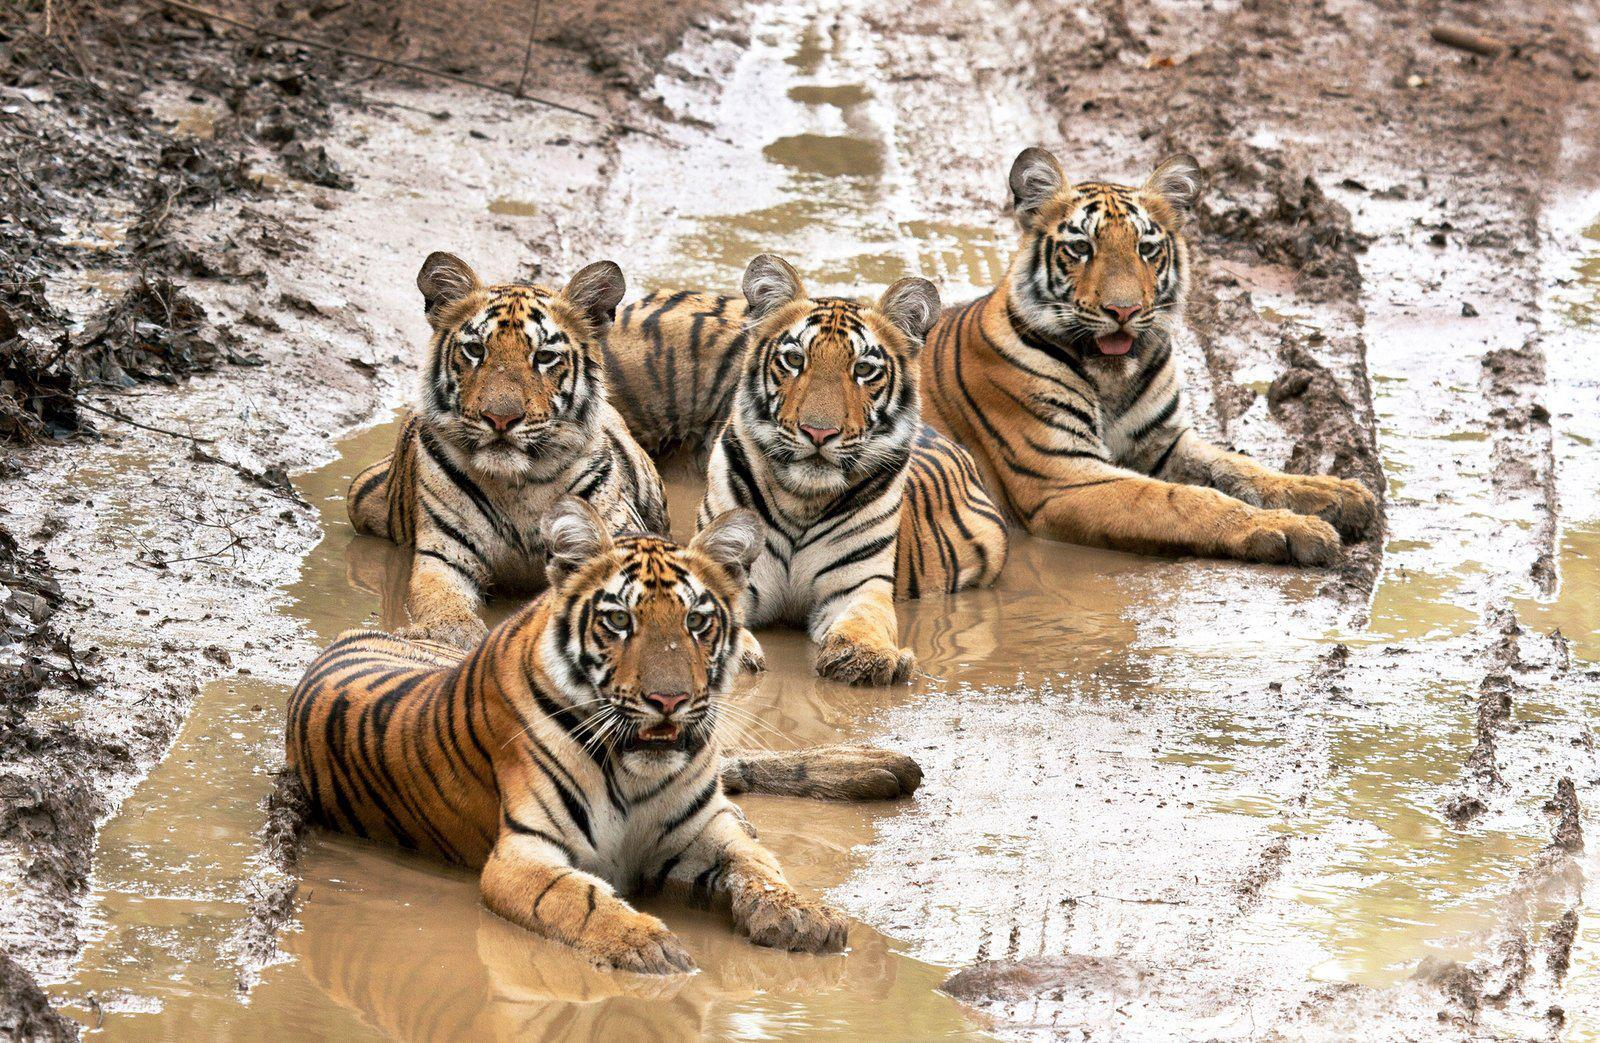 View joke - Even in the mud tigers stay elegant